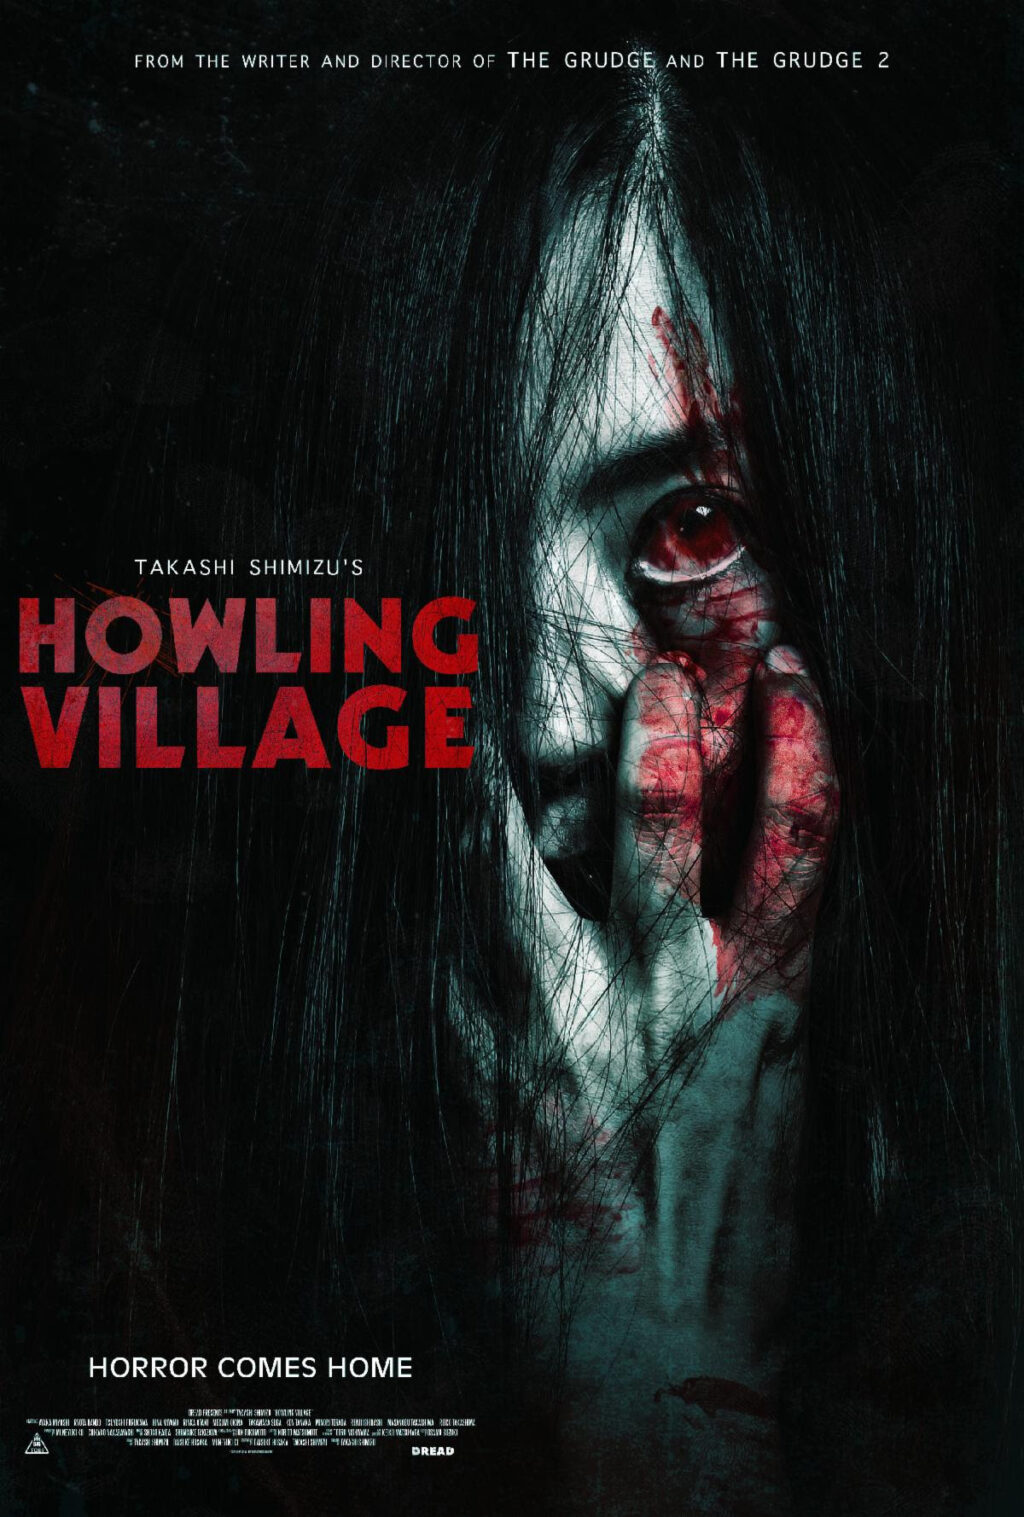 Howling Village poster 1024x1517 - Bone-Chilling New Clip from HOWLING VILLAGE on VOD August 17th